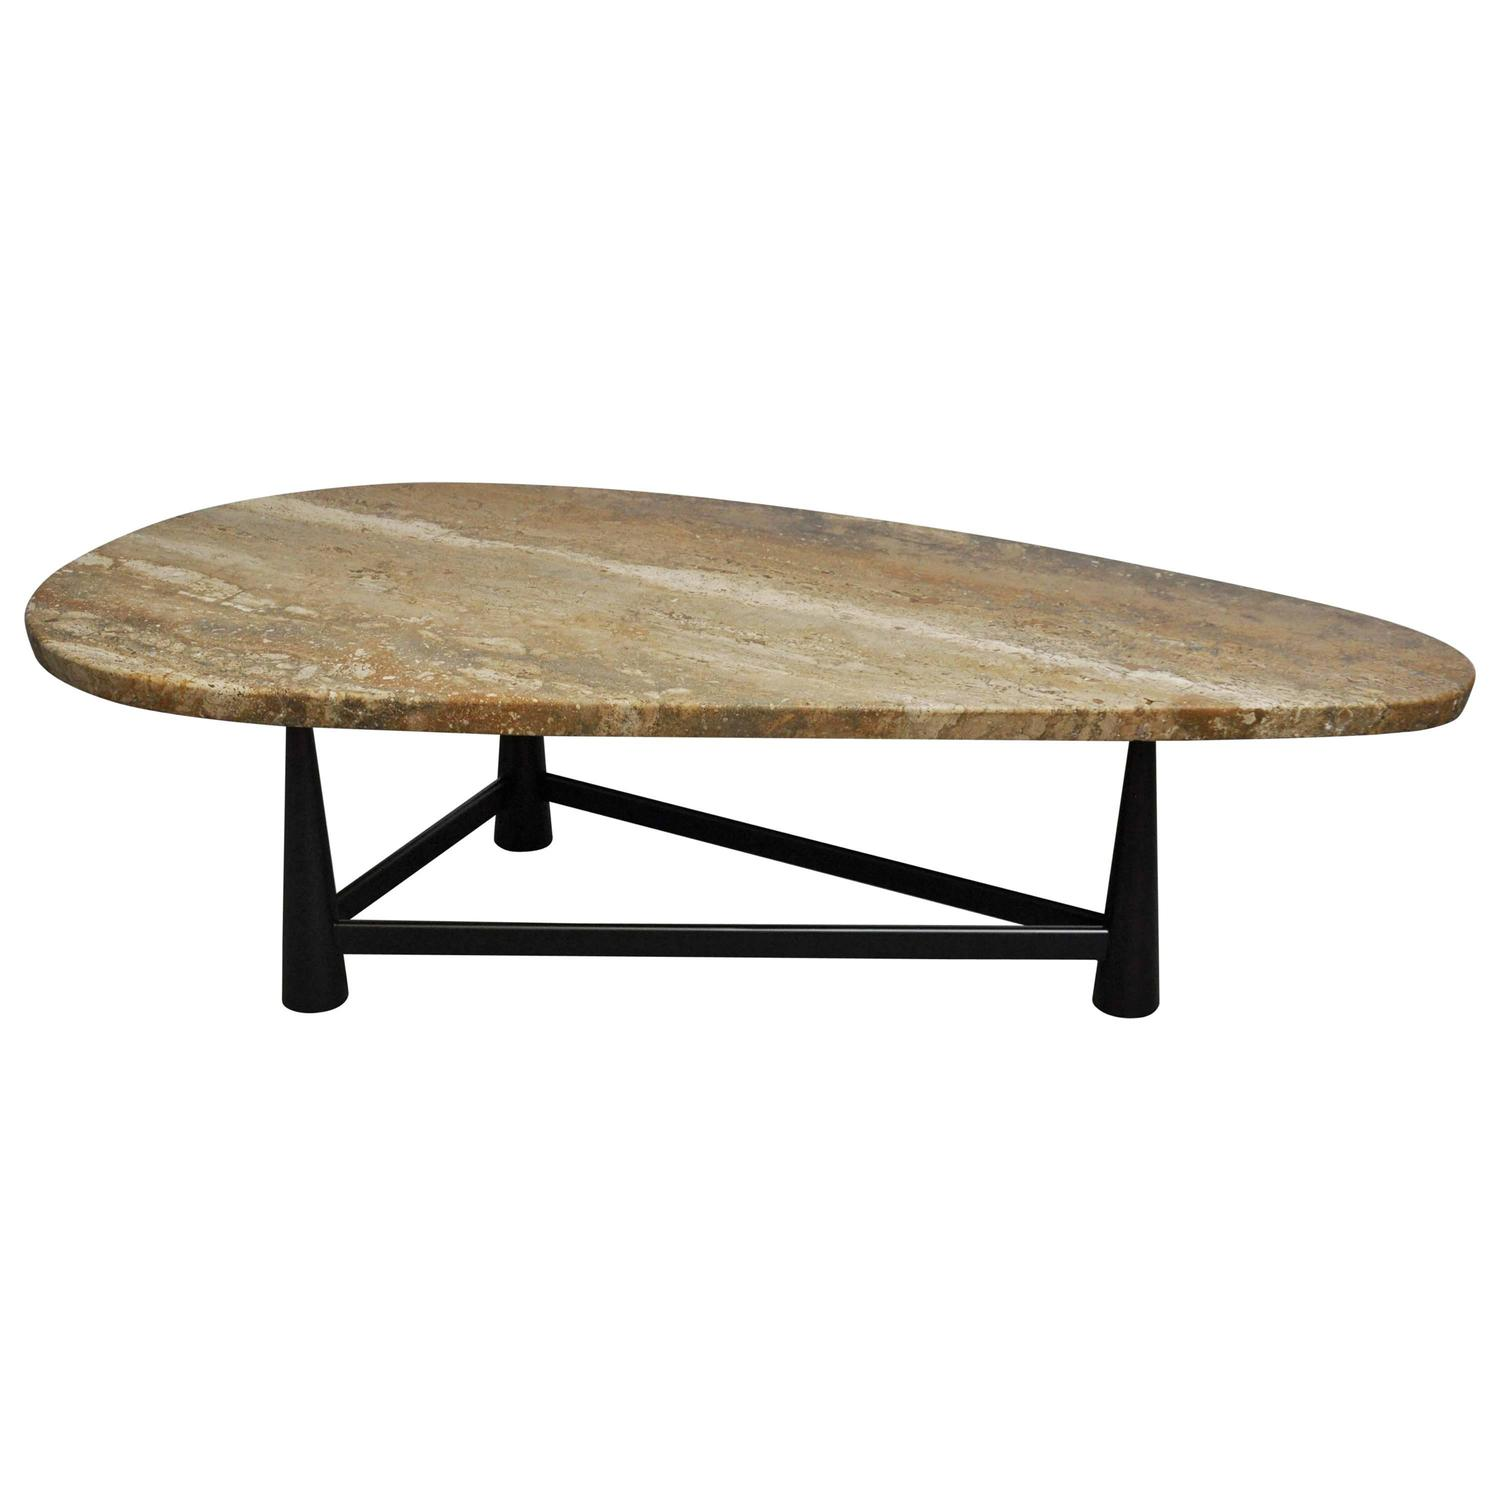 Rare Dunbar Travertine Coffee Table by Edward Wormley For Sale at